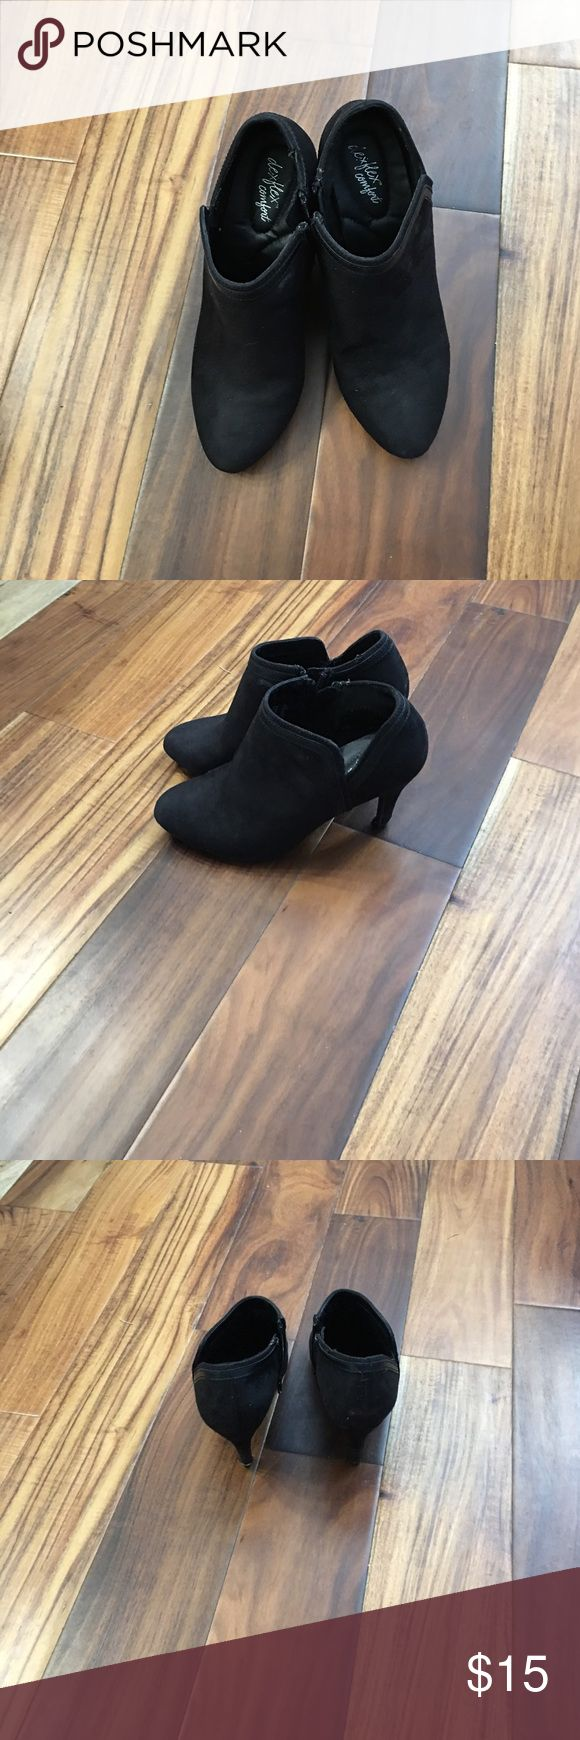 SW flex comfort ankle boots black Good condition little wear show. In pic on heel other than that good condition dexflex comfort Shoes Ankle Boots & Booties